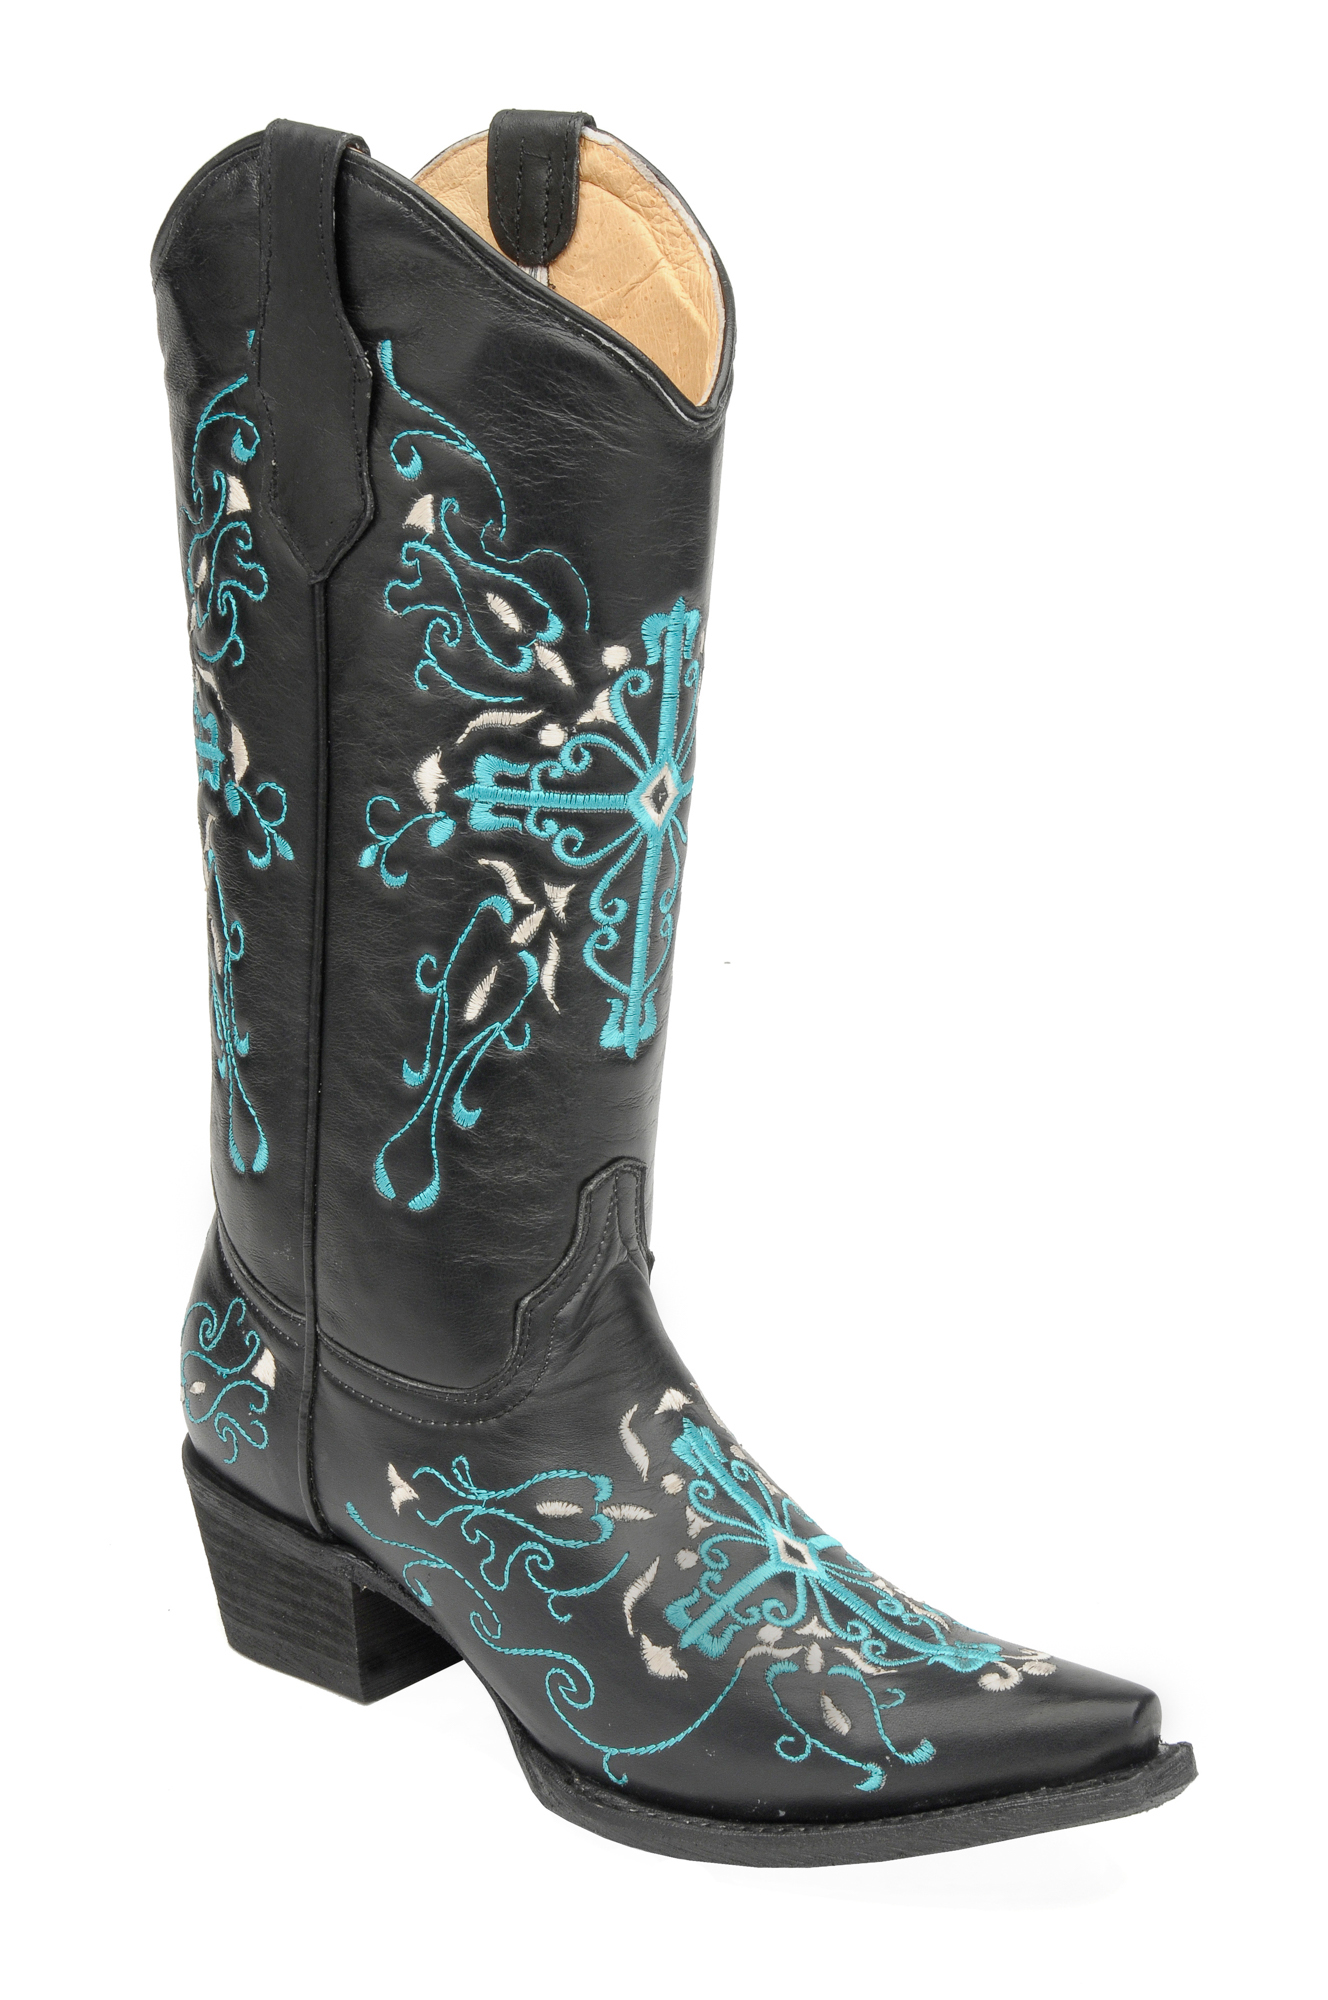 corral boots womens leather circle g cross black turquoise